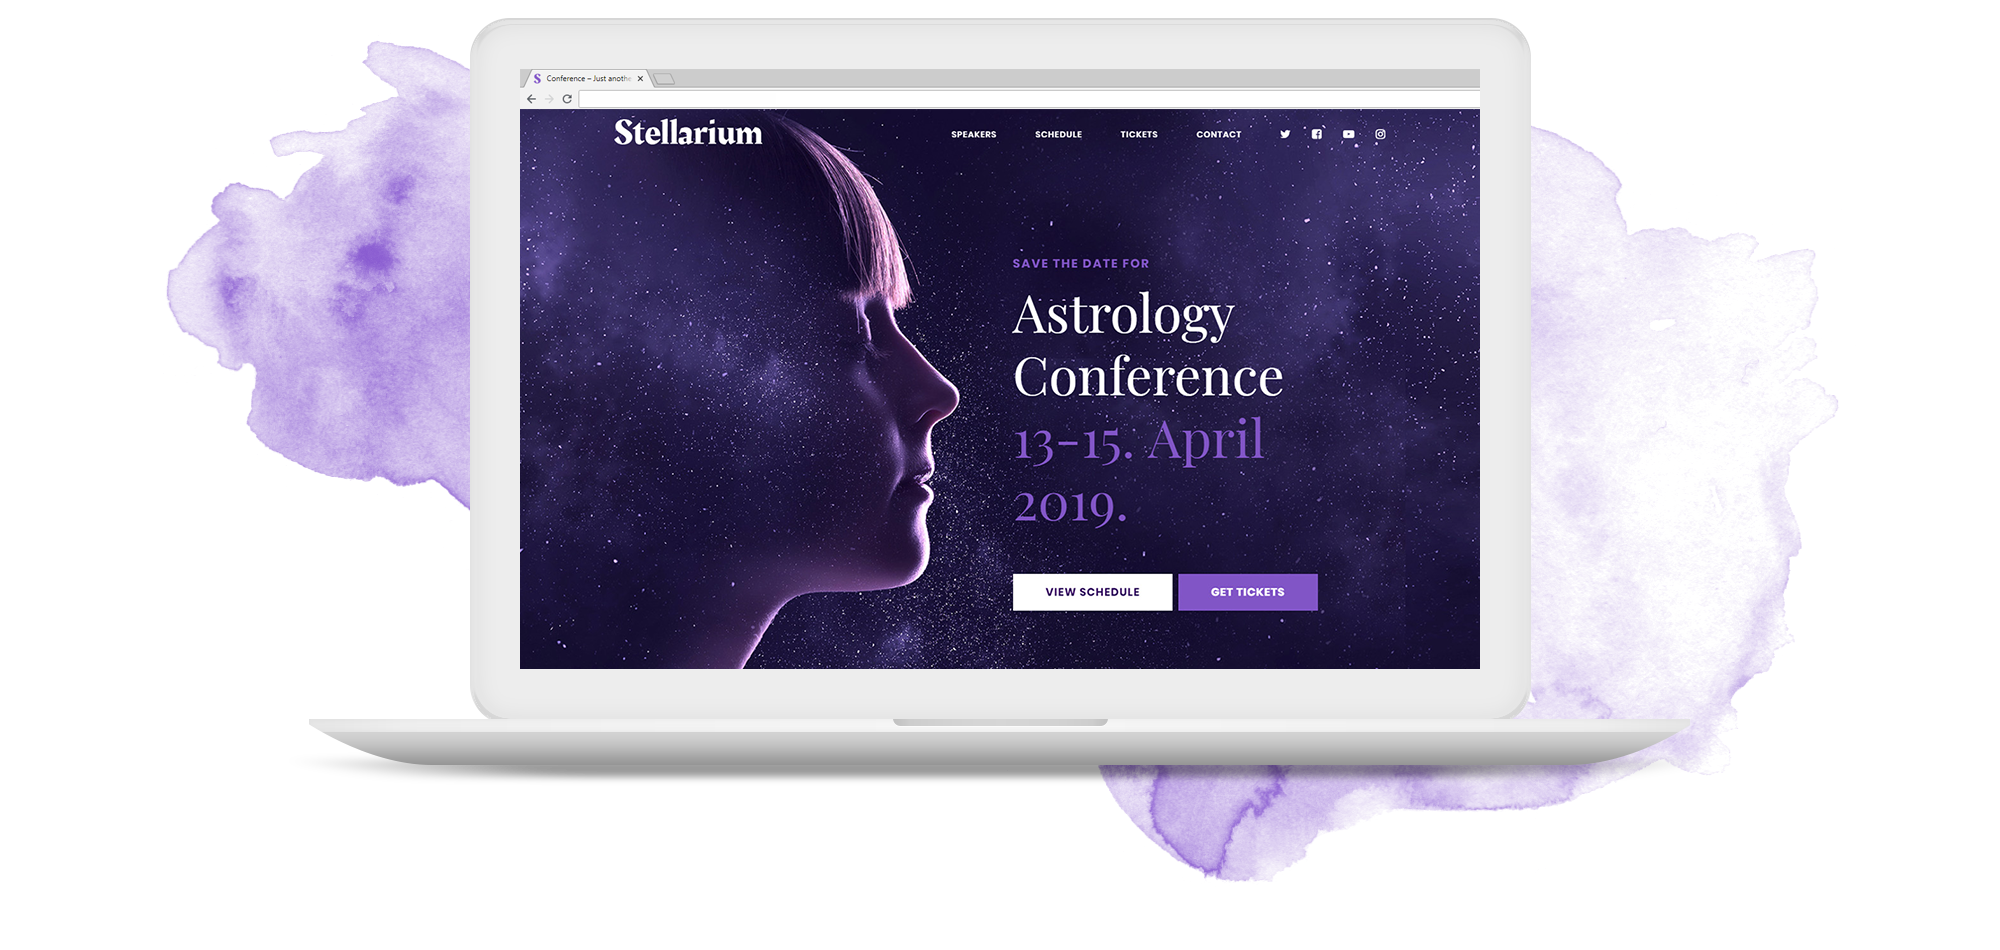 http://stellarium.bold-themes.com/wp-content/uploads/2018/07/MacBook-Mockup-Conference.png